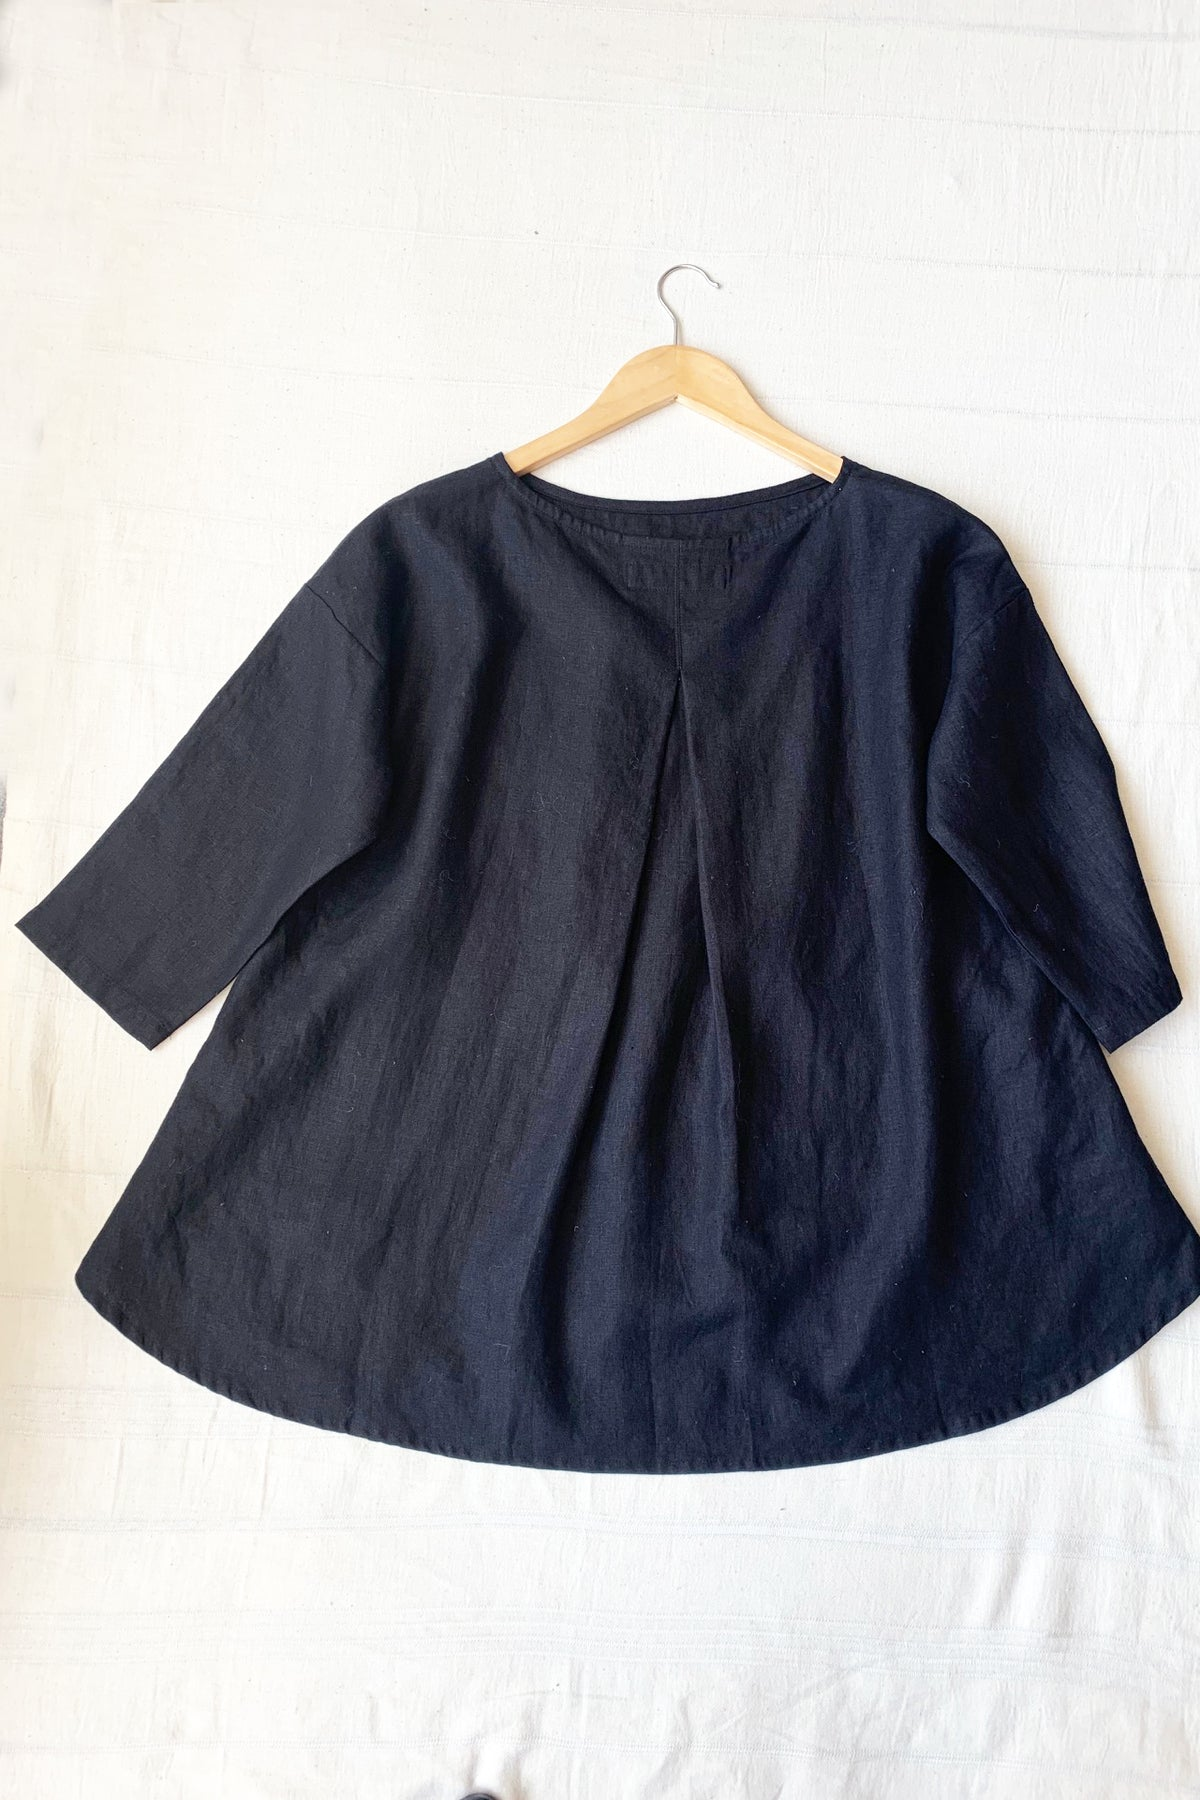 Leaf Top (Available in Black)